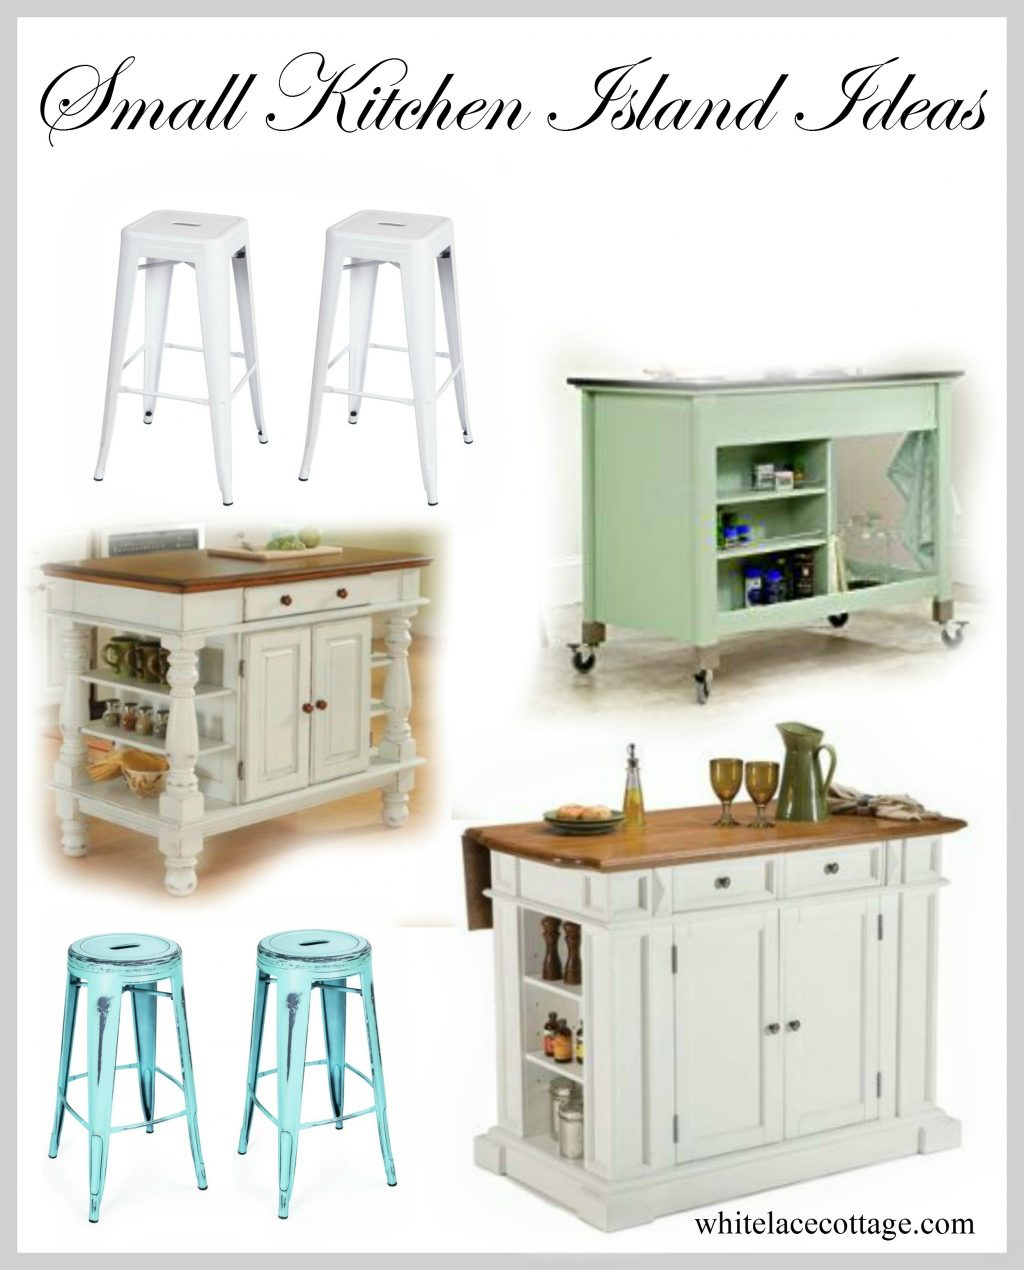 Small Kitchen Island Ideas With Seating White Lace Cottage Small